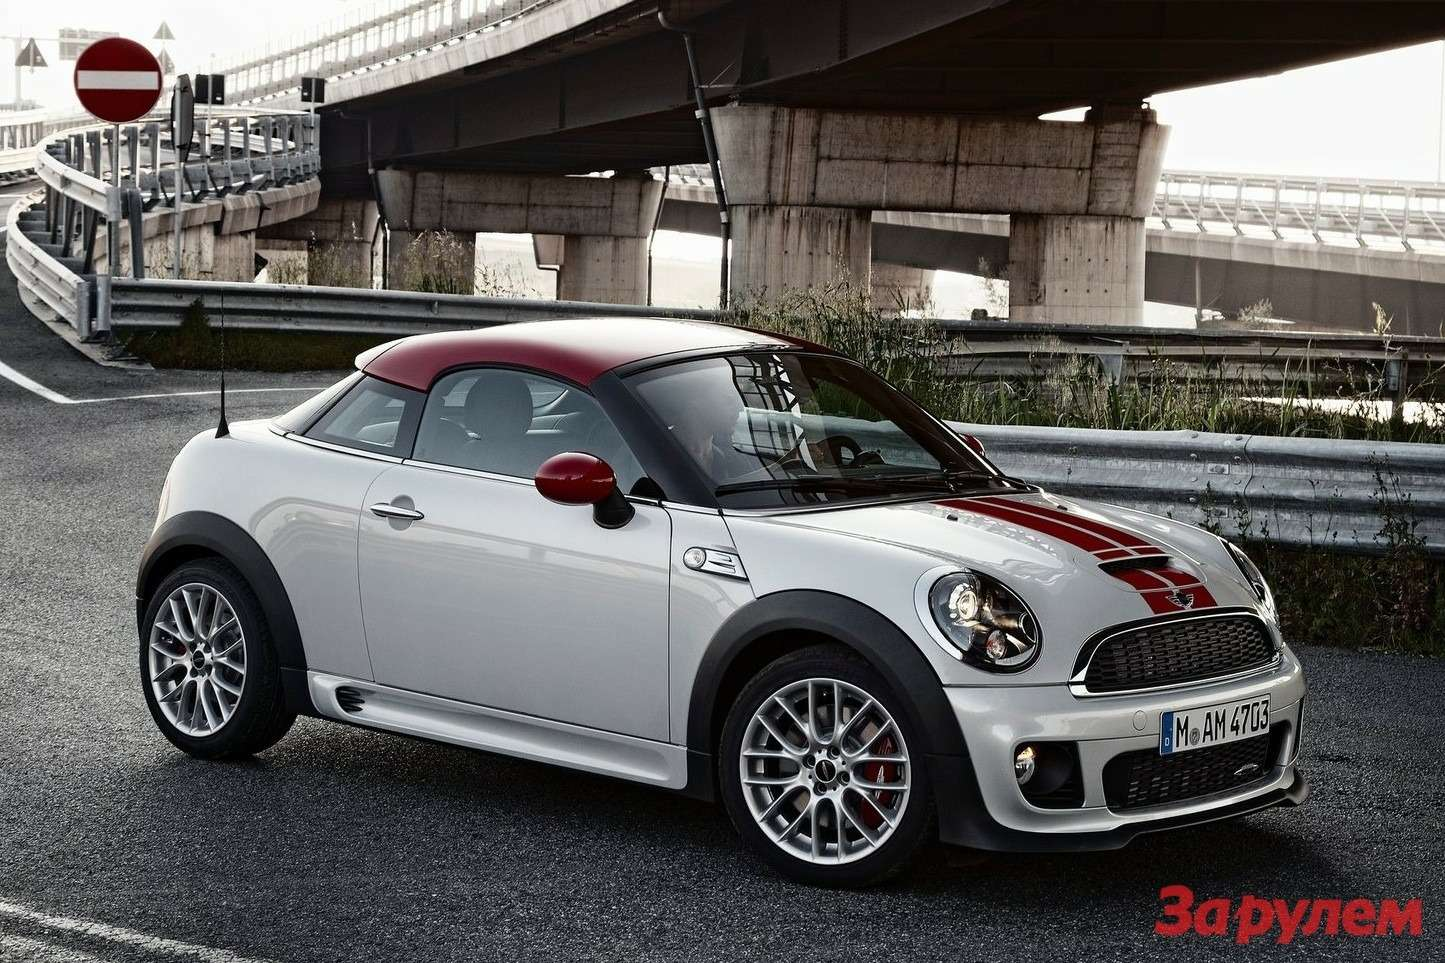 Mini Coupe 2012 1600x1200 wallpaper 02